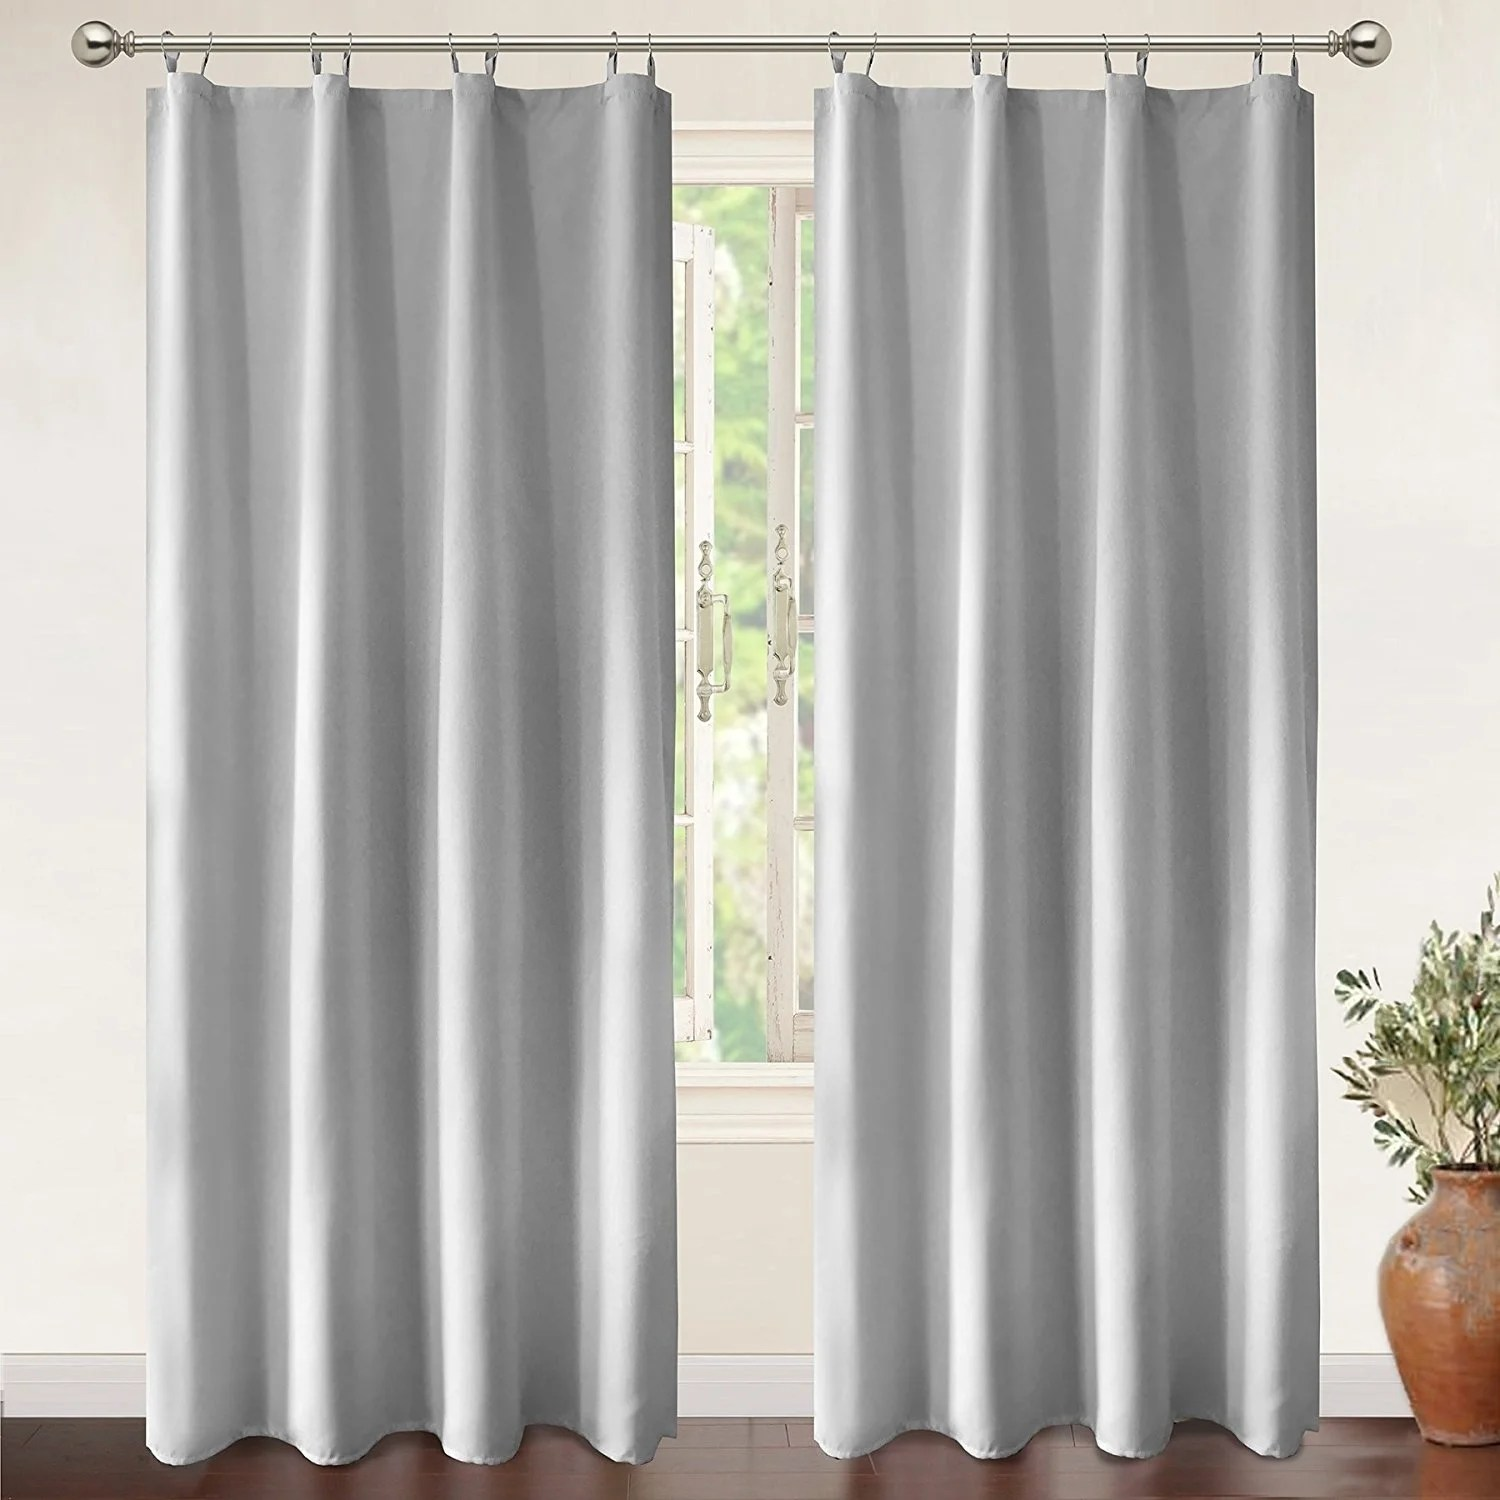 94 Inch Blackout Curtains Details About Driftaway Insulated Blackout Curtain Liner For Grommet Curtains